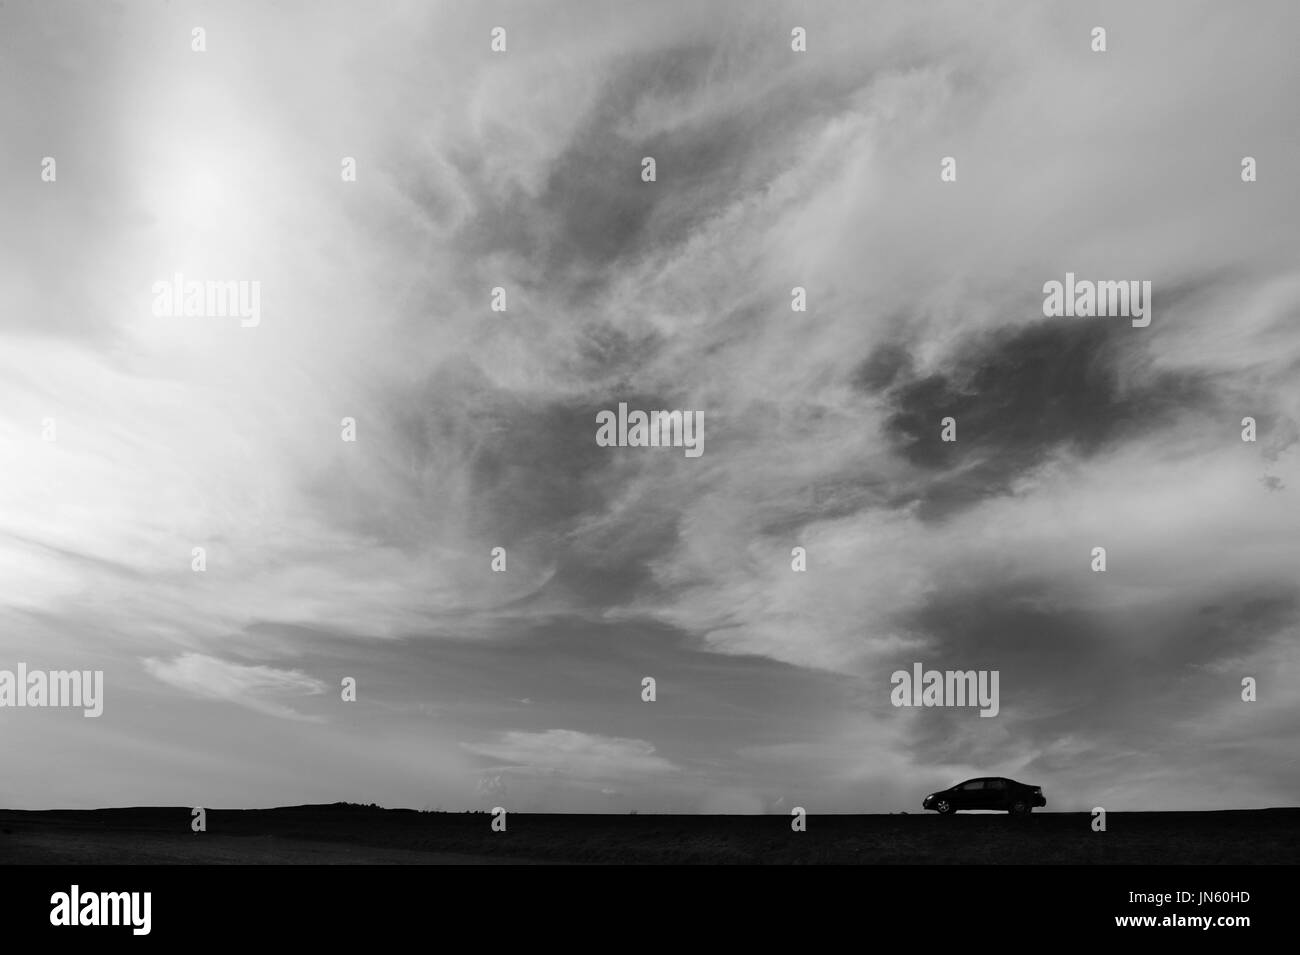 Wide sky and sillhouette car, good for background and slide presentation, minimalism style black and white image. - Stock Image